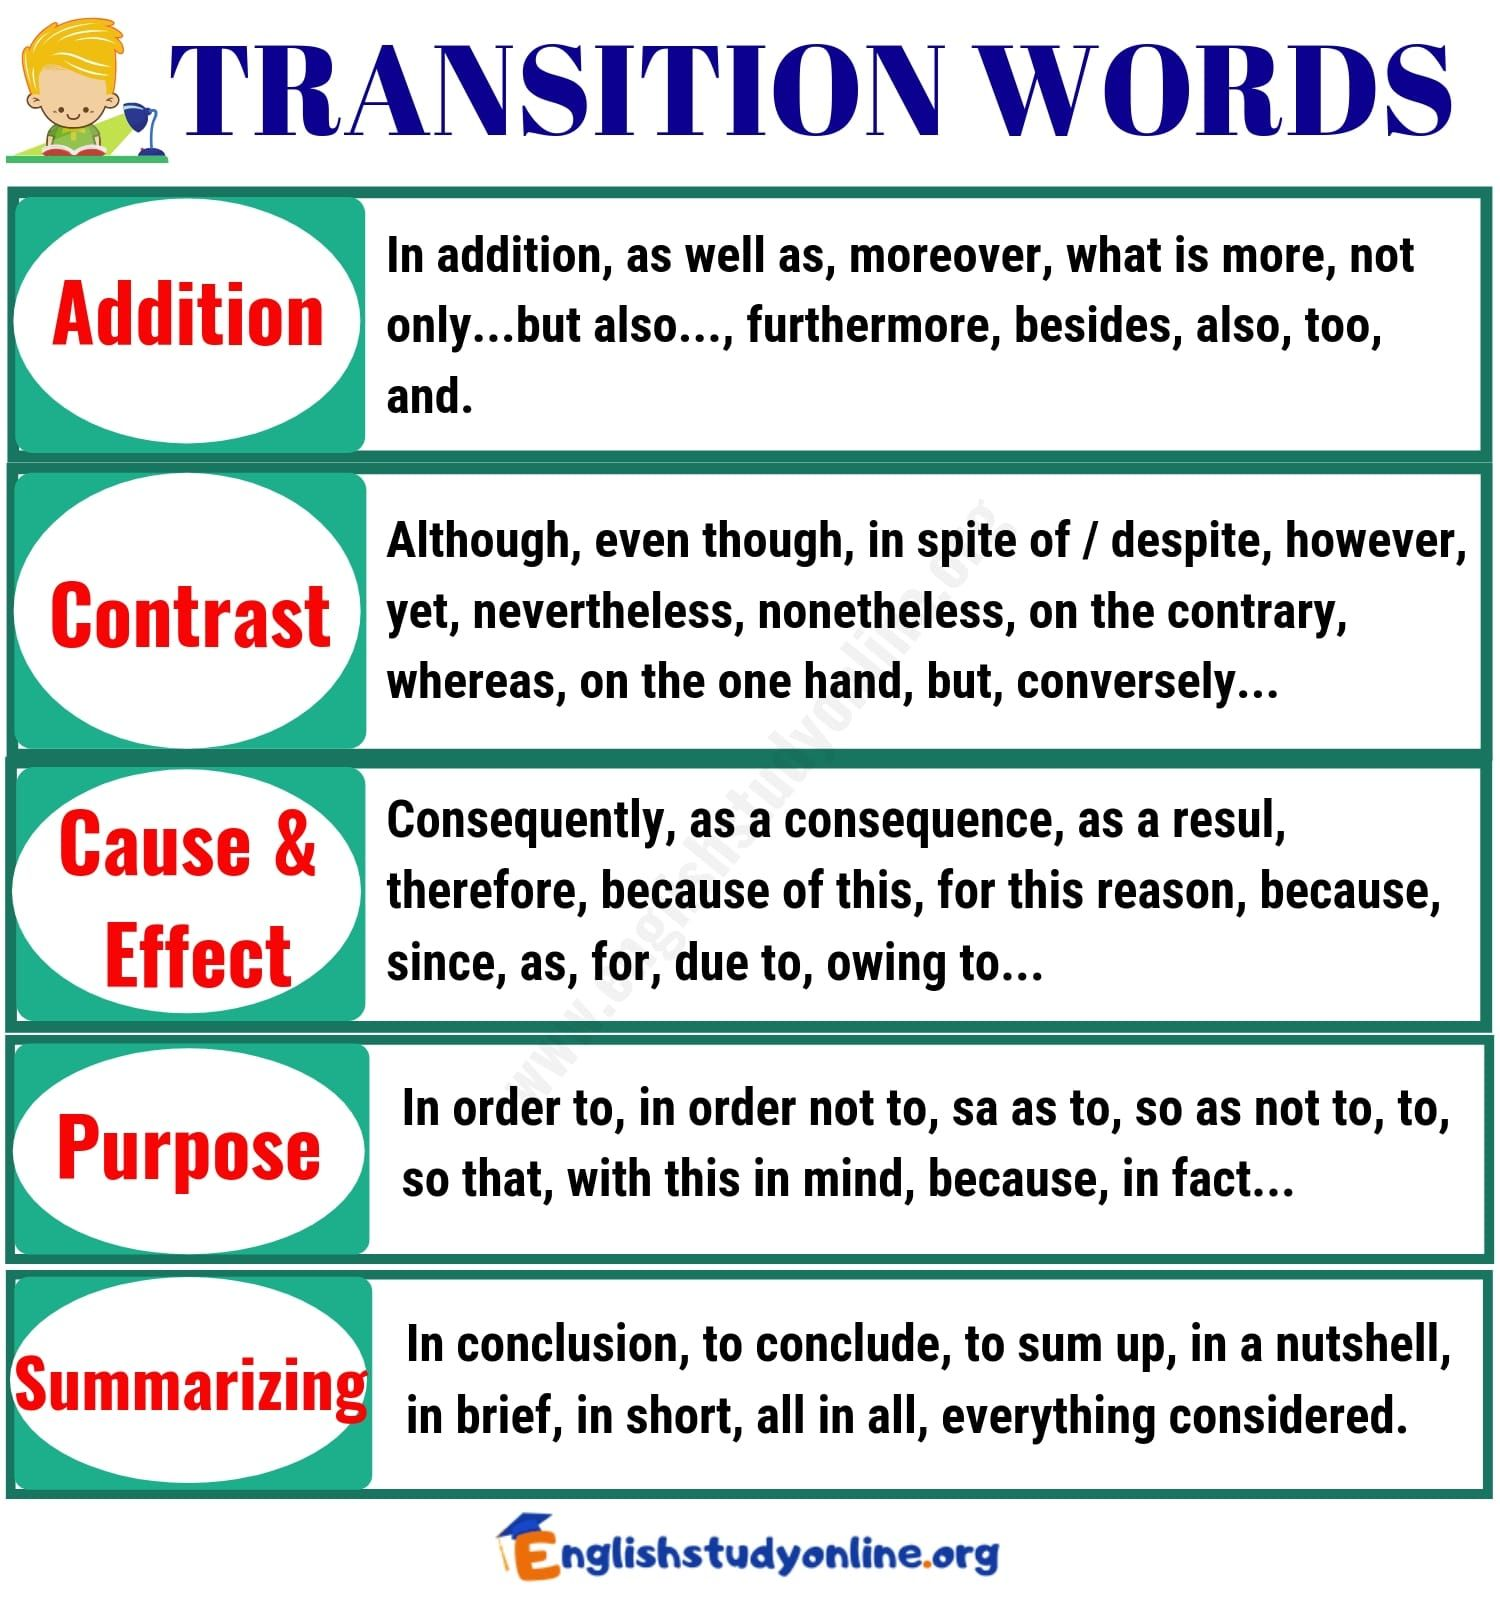 100 Important Transition Words And Phrases With Examples English Study Online Transition Words Transition Words And Phrases Words What other words mean addition